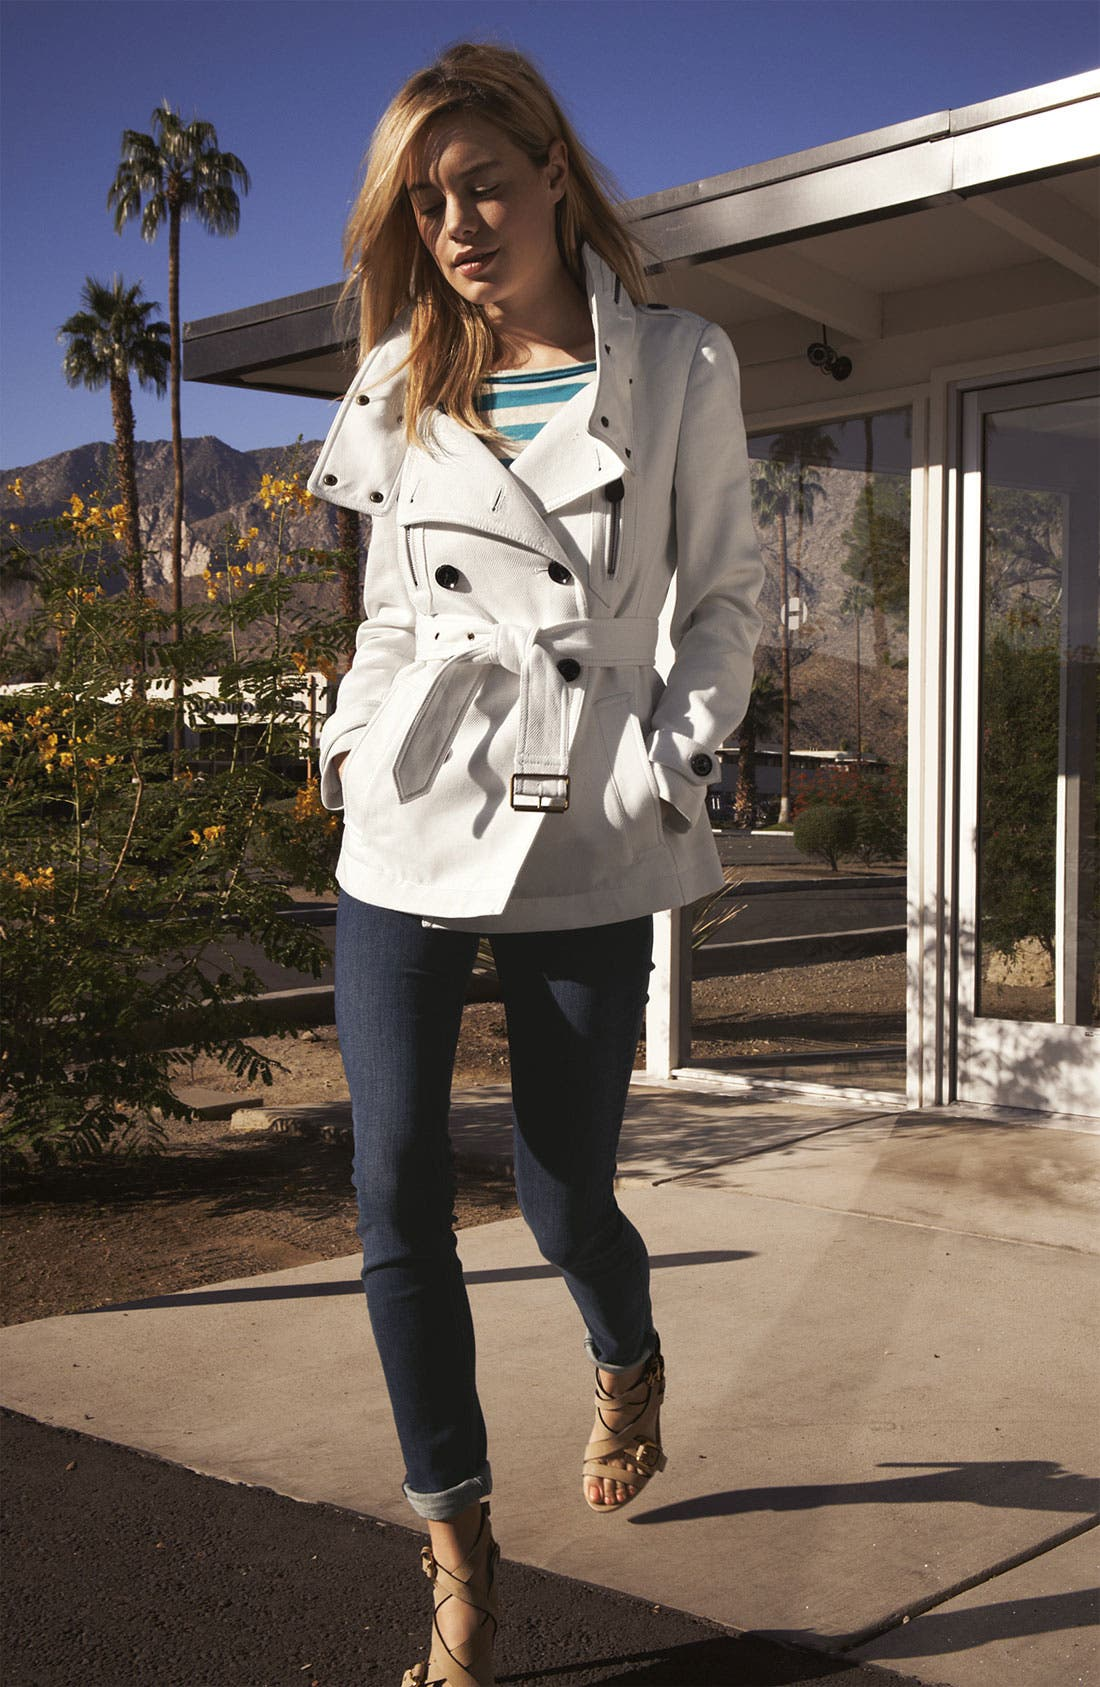 Main Image - Burberry Brit Trench Coat, Tee & Jeans